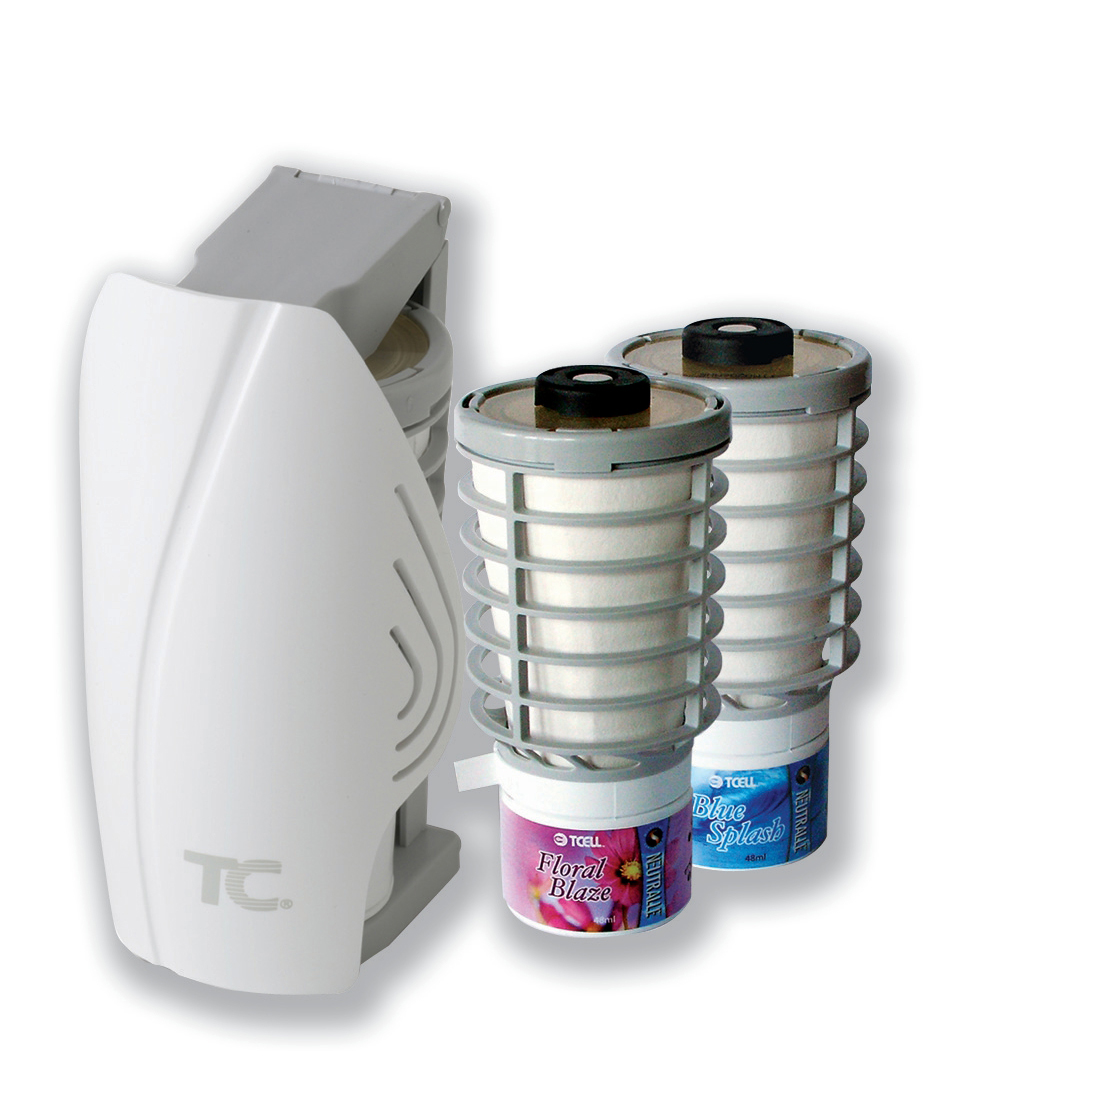 Air Freshener Tcell Starter Kit Pure Fragrance and Odour Neutraliser for 60 Days plus 2 Refills Ref 402557E